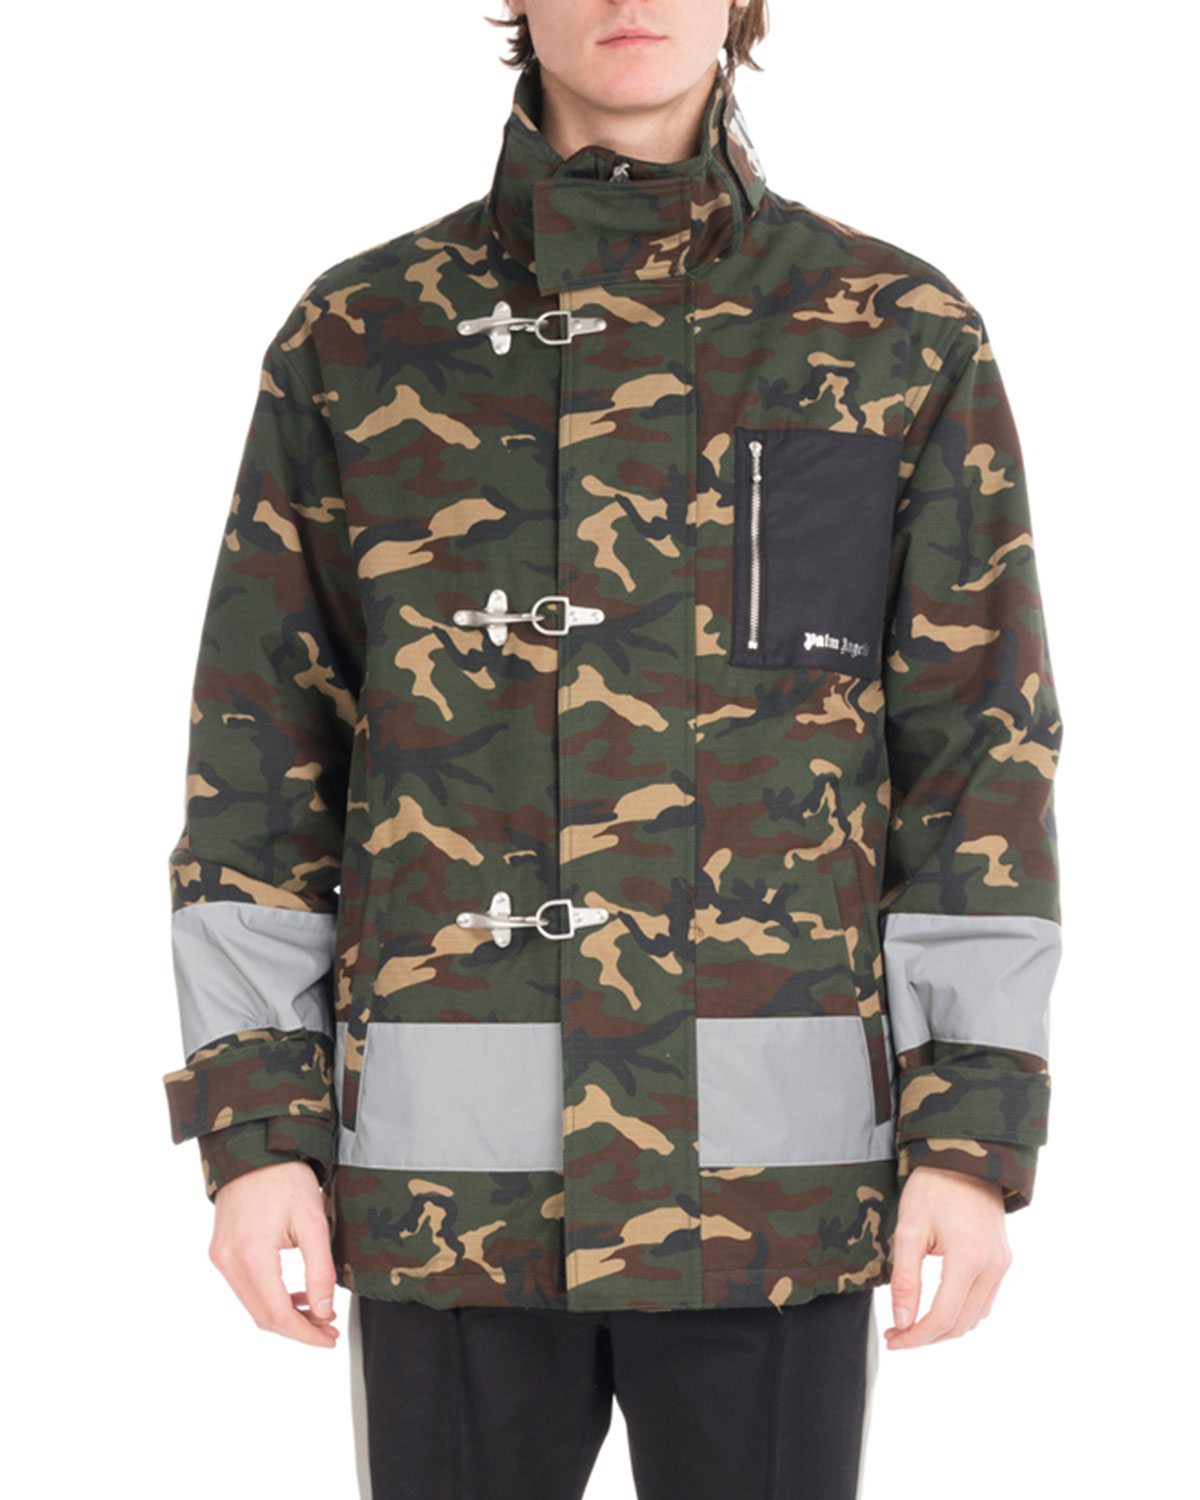 0d1bbde824867 Palm Angels Camouflage Fireman Utility Jacket, Green | Neiman Marcus